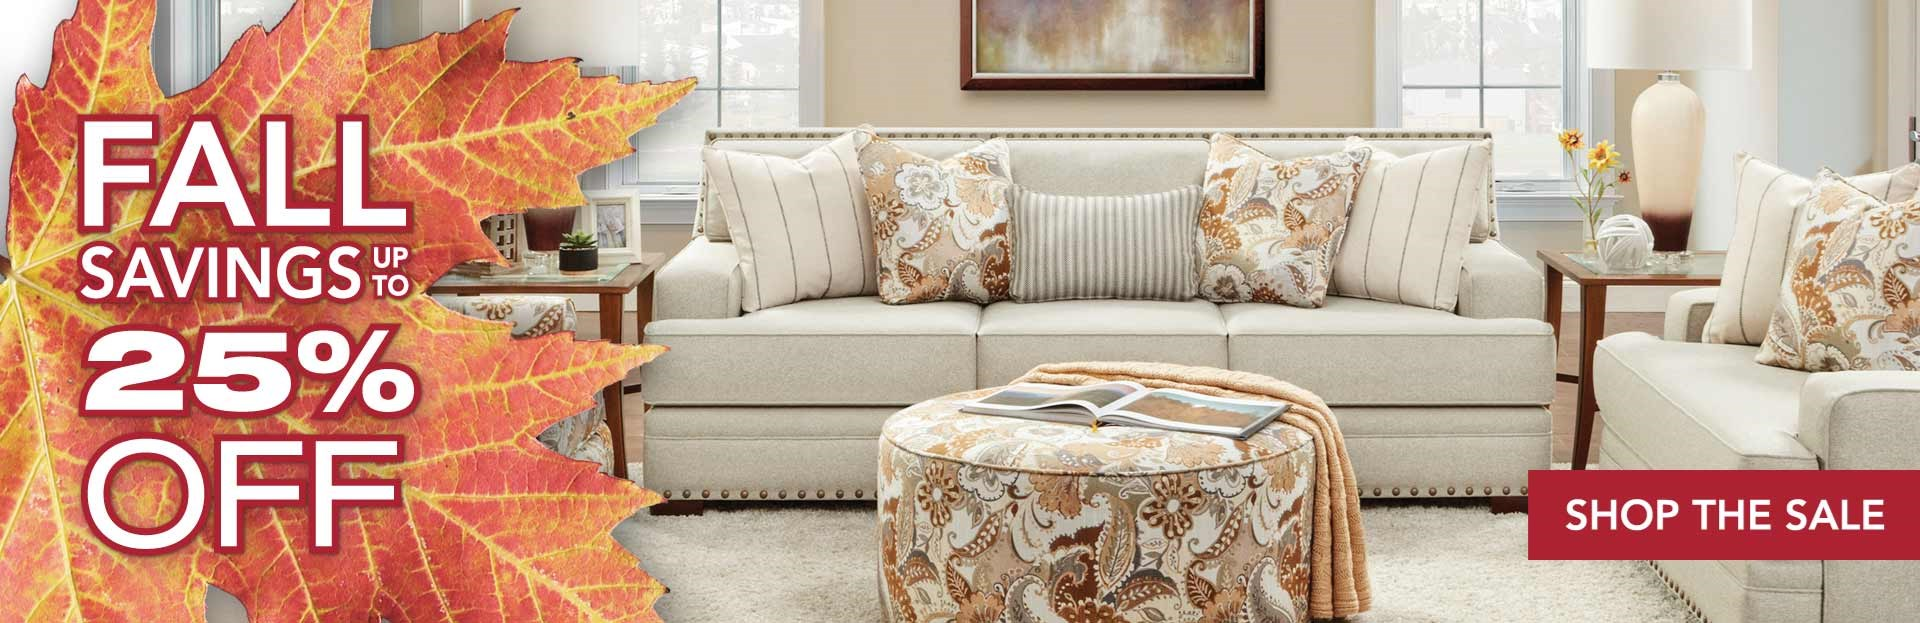 Fall Sale Royal Furniture